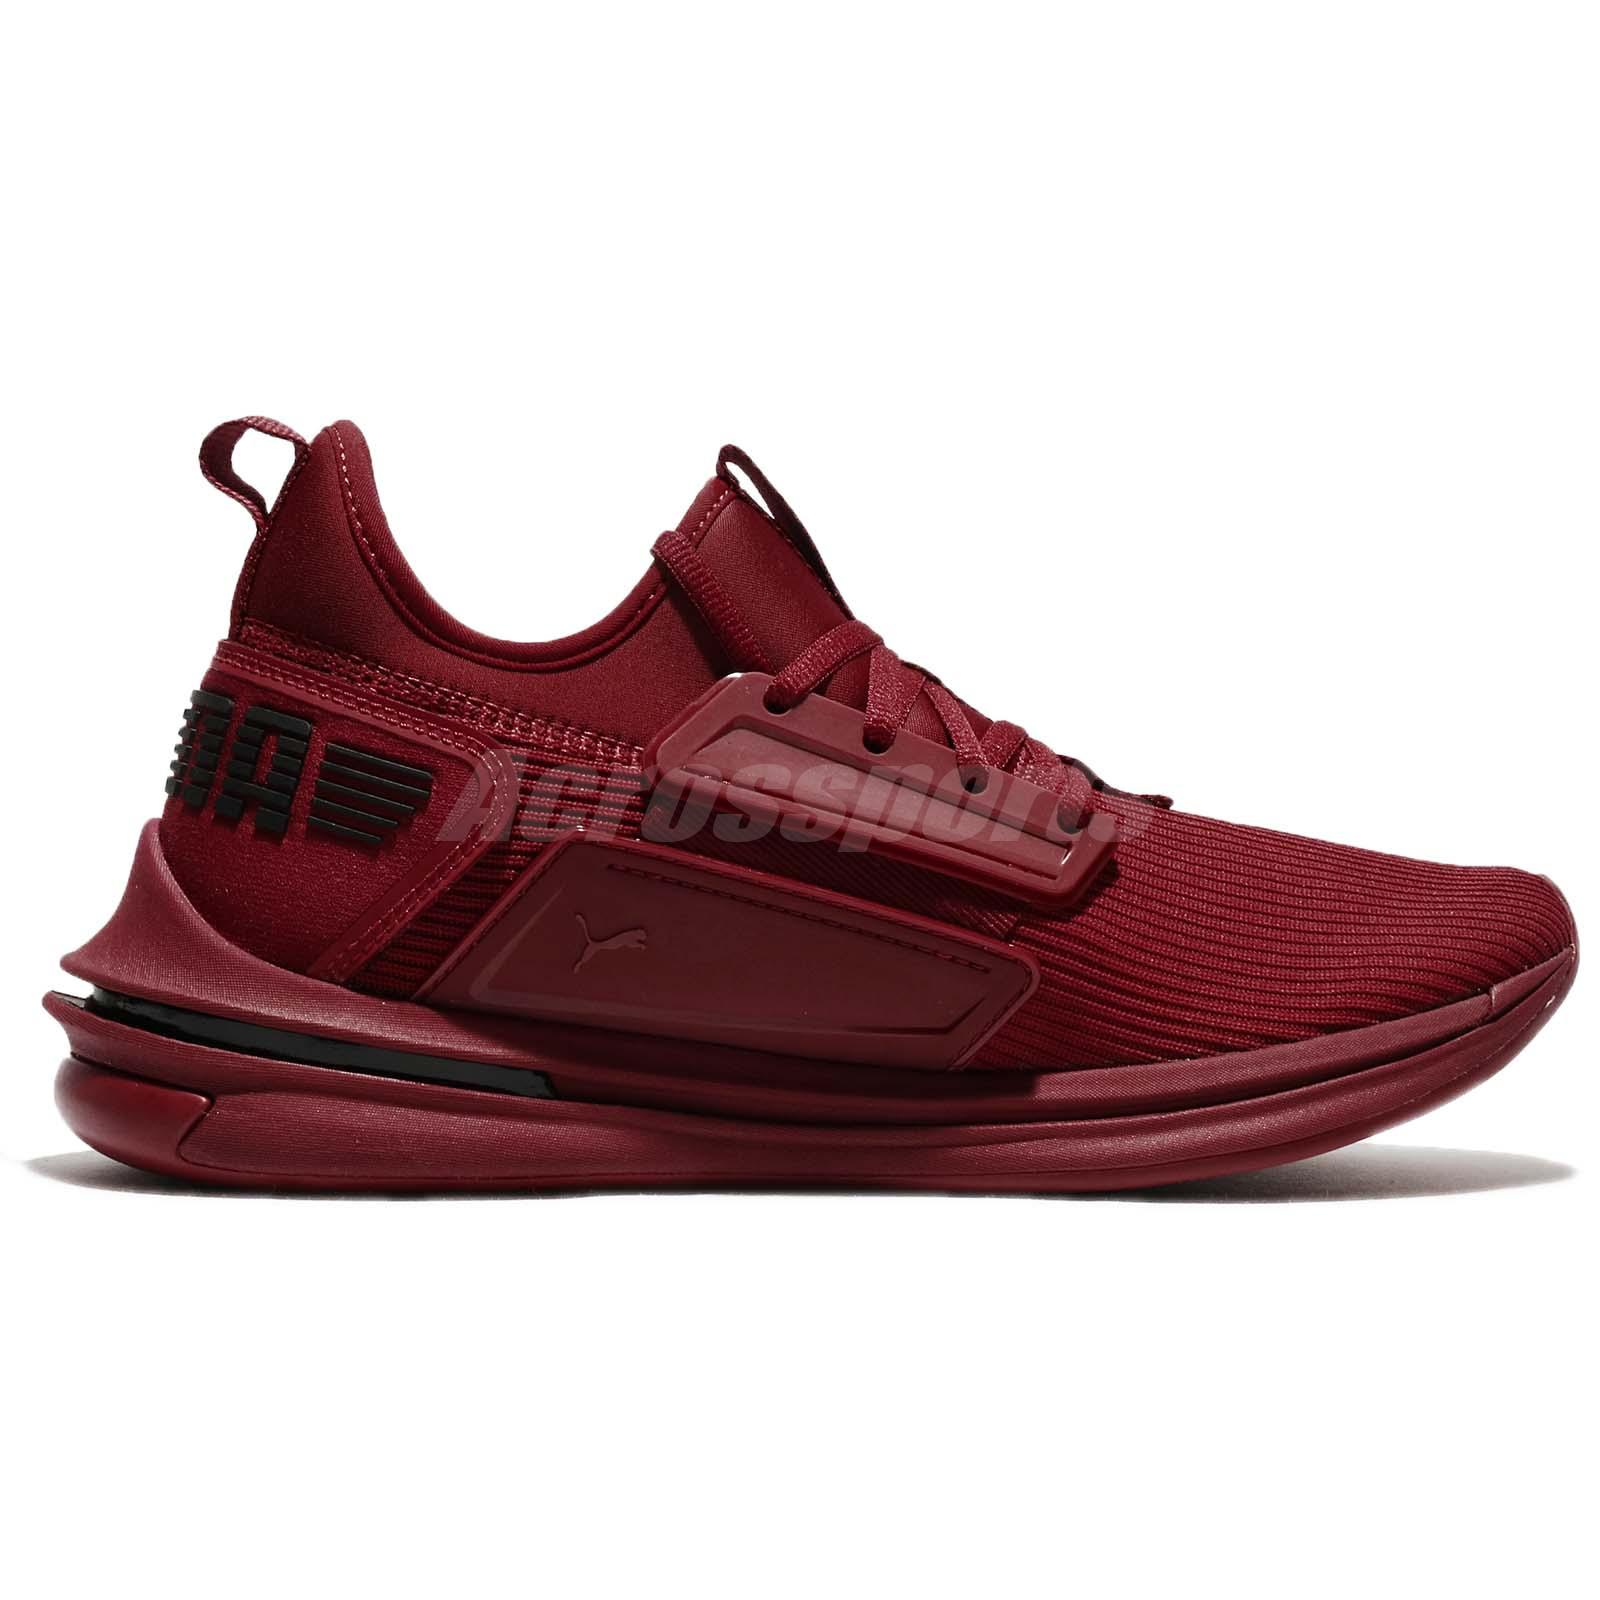 Verkauf Countdown-Paket IGNITE LIMITLESS SR - Sneaker low - red dahlia Footlocker Finish Online Billig Verkaufen Mode Spielraum Footlocker Finish 6XsMGPpG